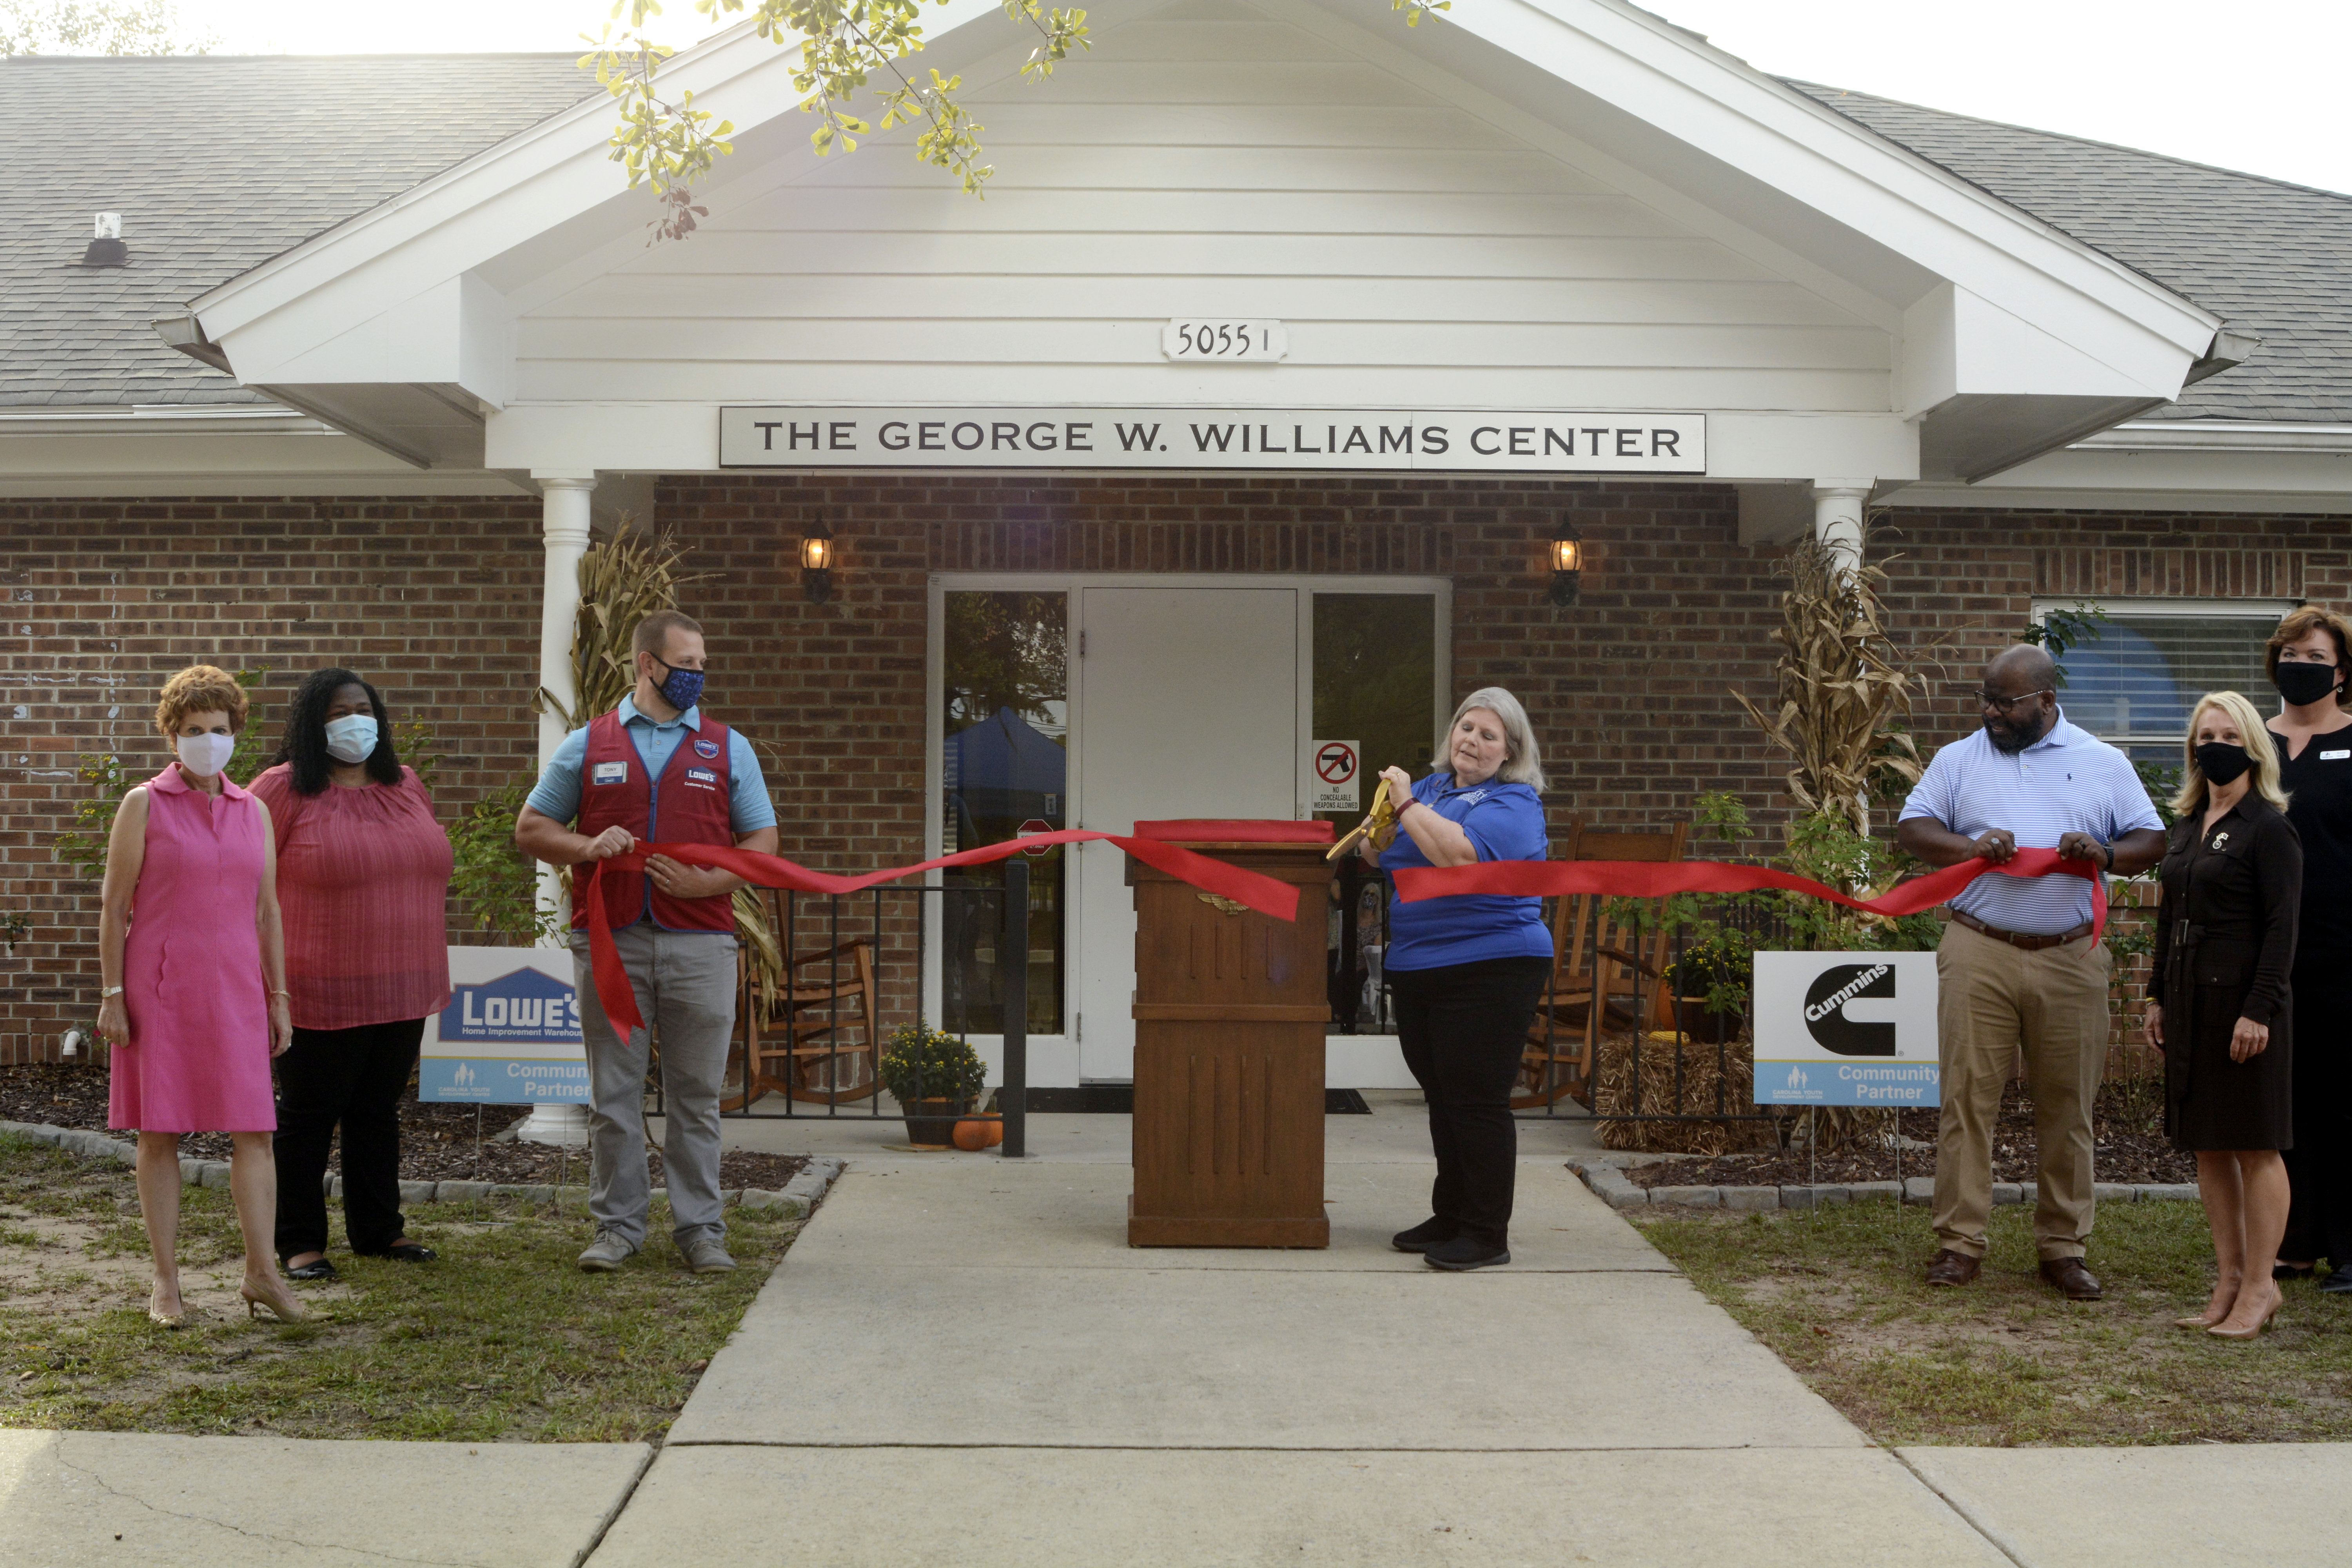 Carolina Youth Development Center Celebrates 230 Years Serving Children and Families